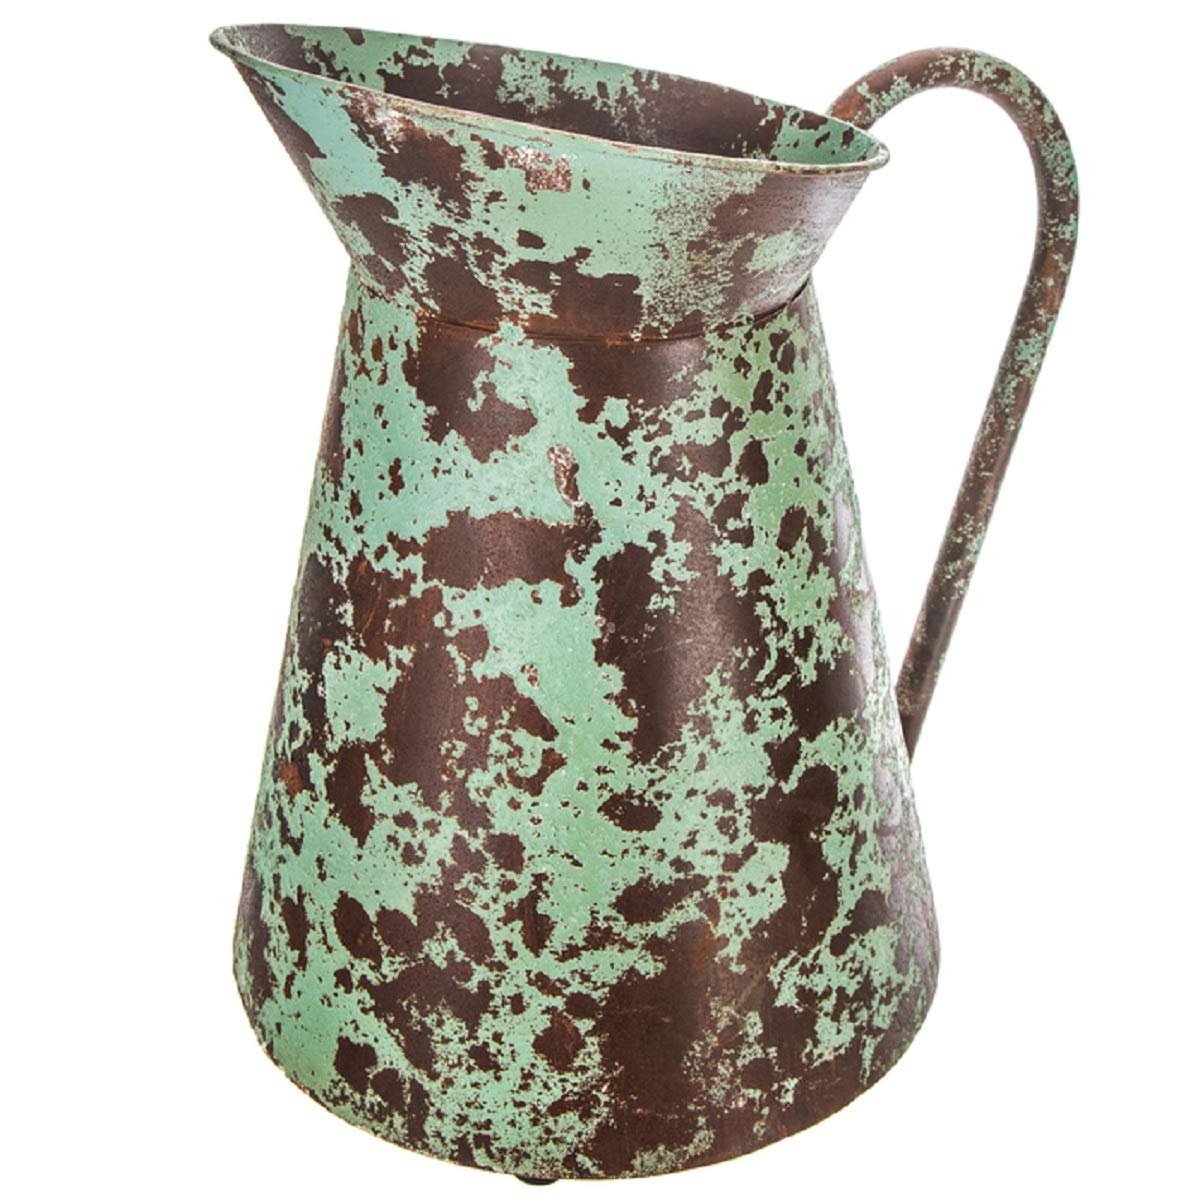 Distressed Rustic Turquoise Pitcher Green Chipped Paint Watering Can Farmhouse Country Vase Farmhouse Country Charm Decor Barn Wedding Decor Vase Pam/'s Glam